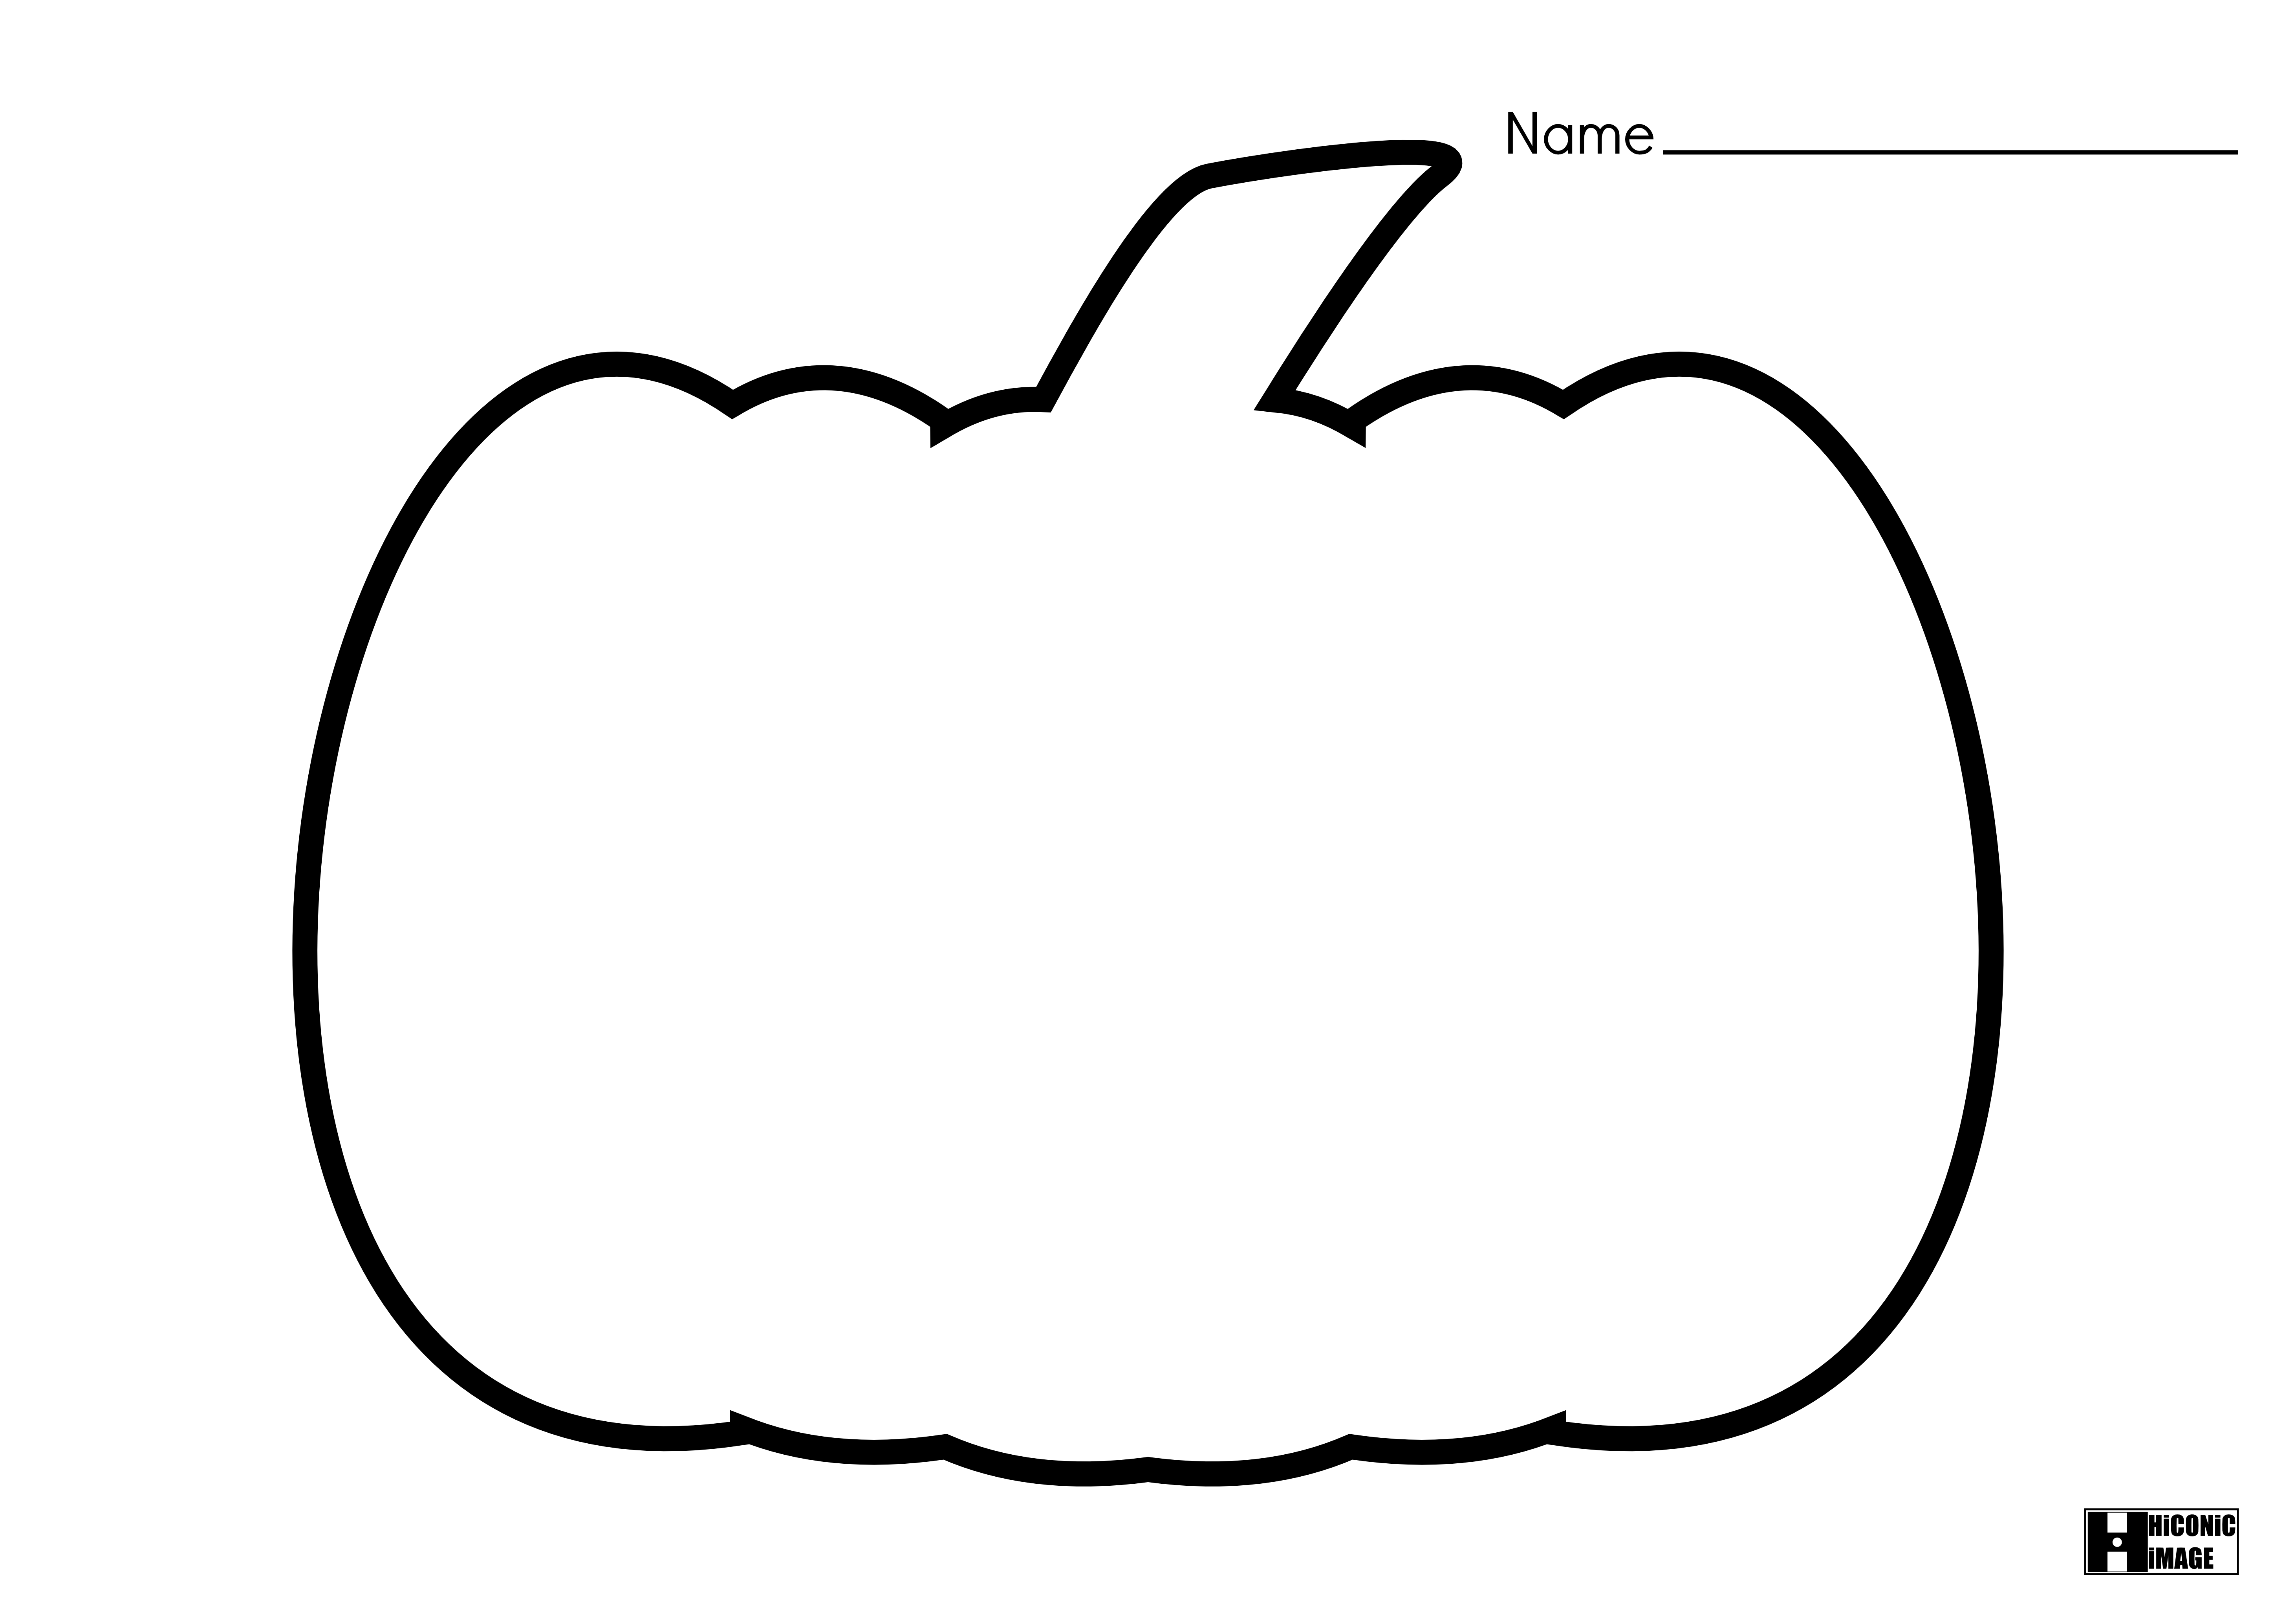 jackolantern coloring pages coloring home Blank Pumpkin Template  Blank Pumpkin Coloring Sheet